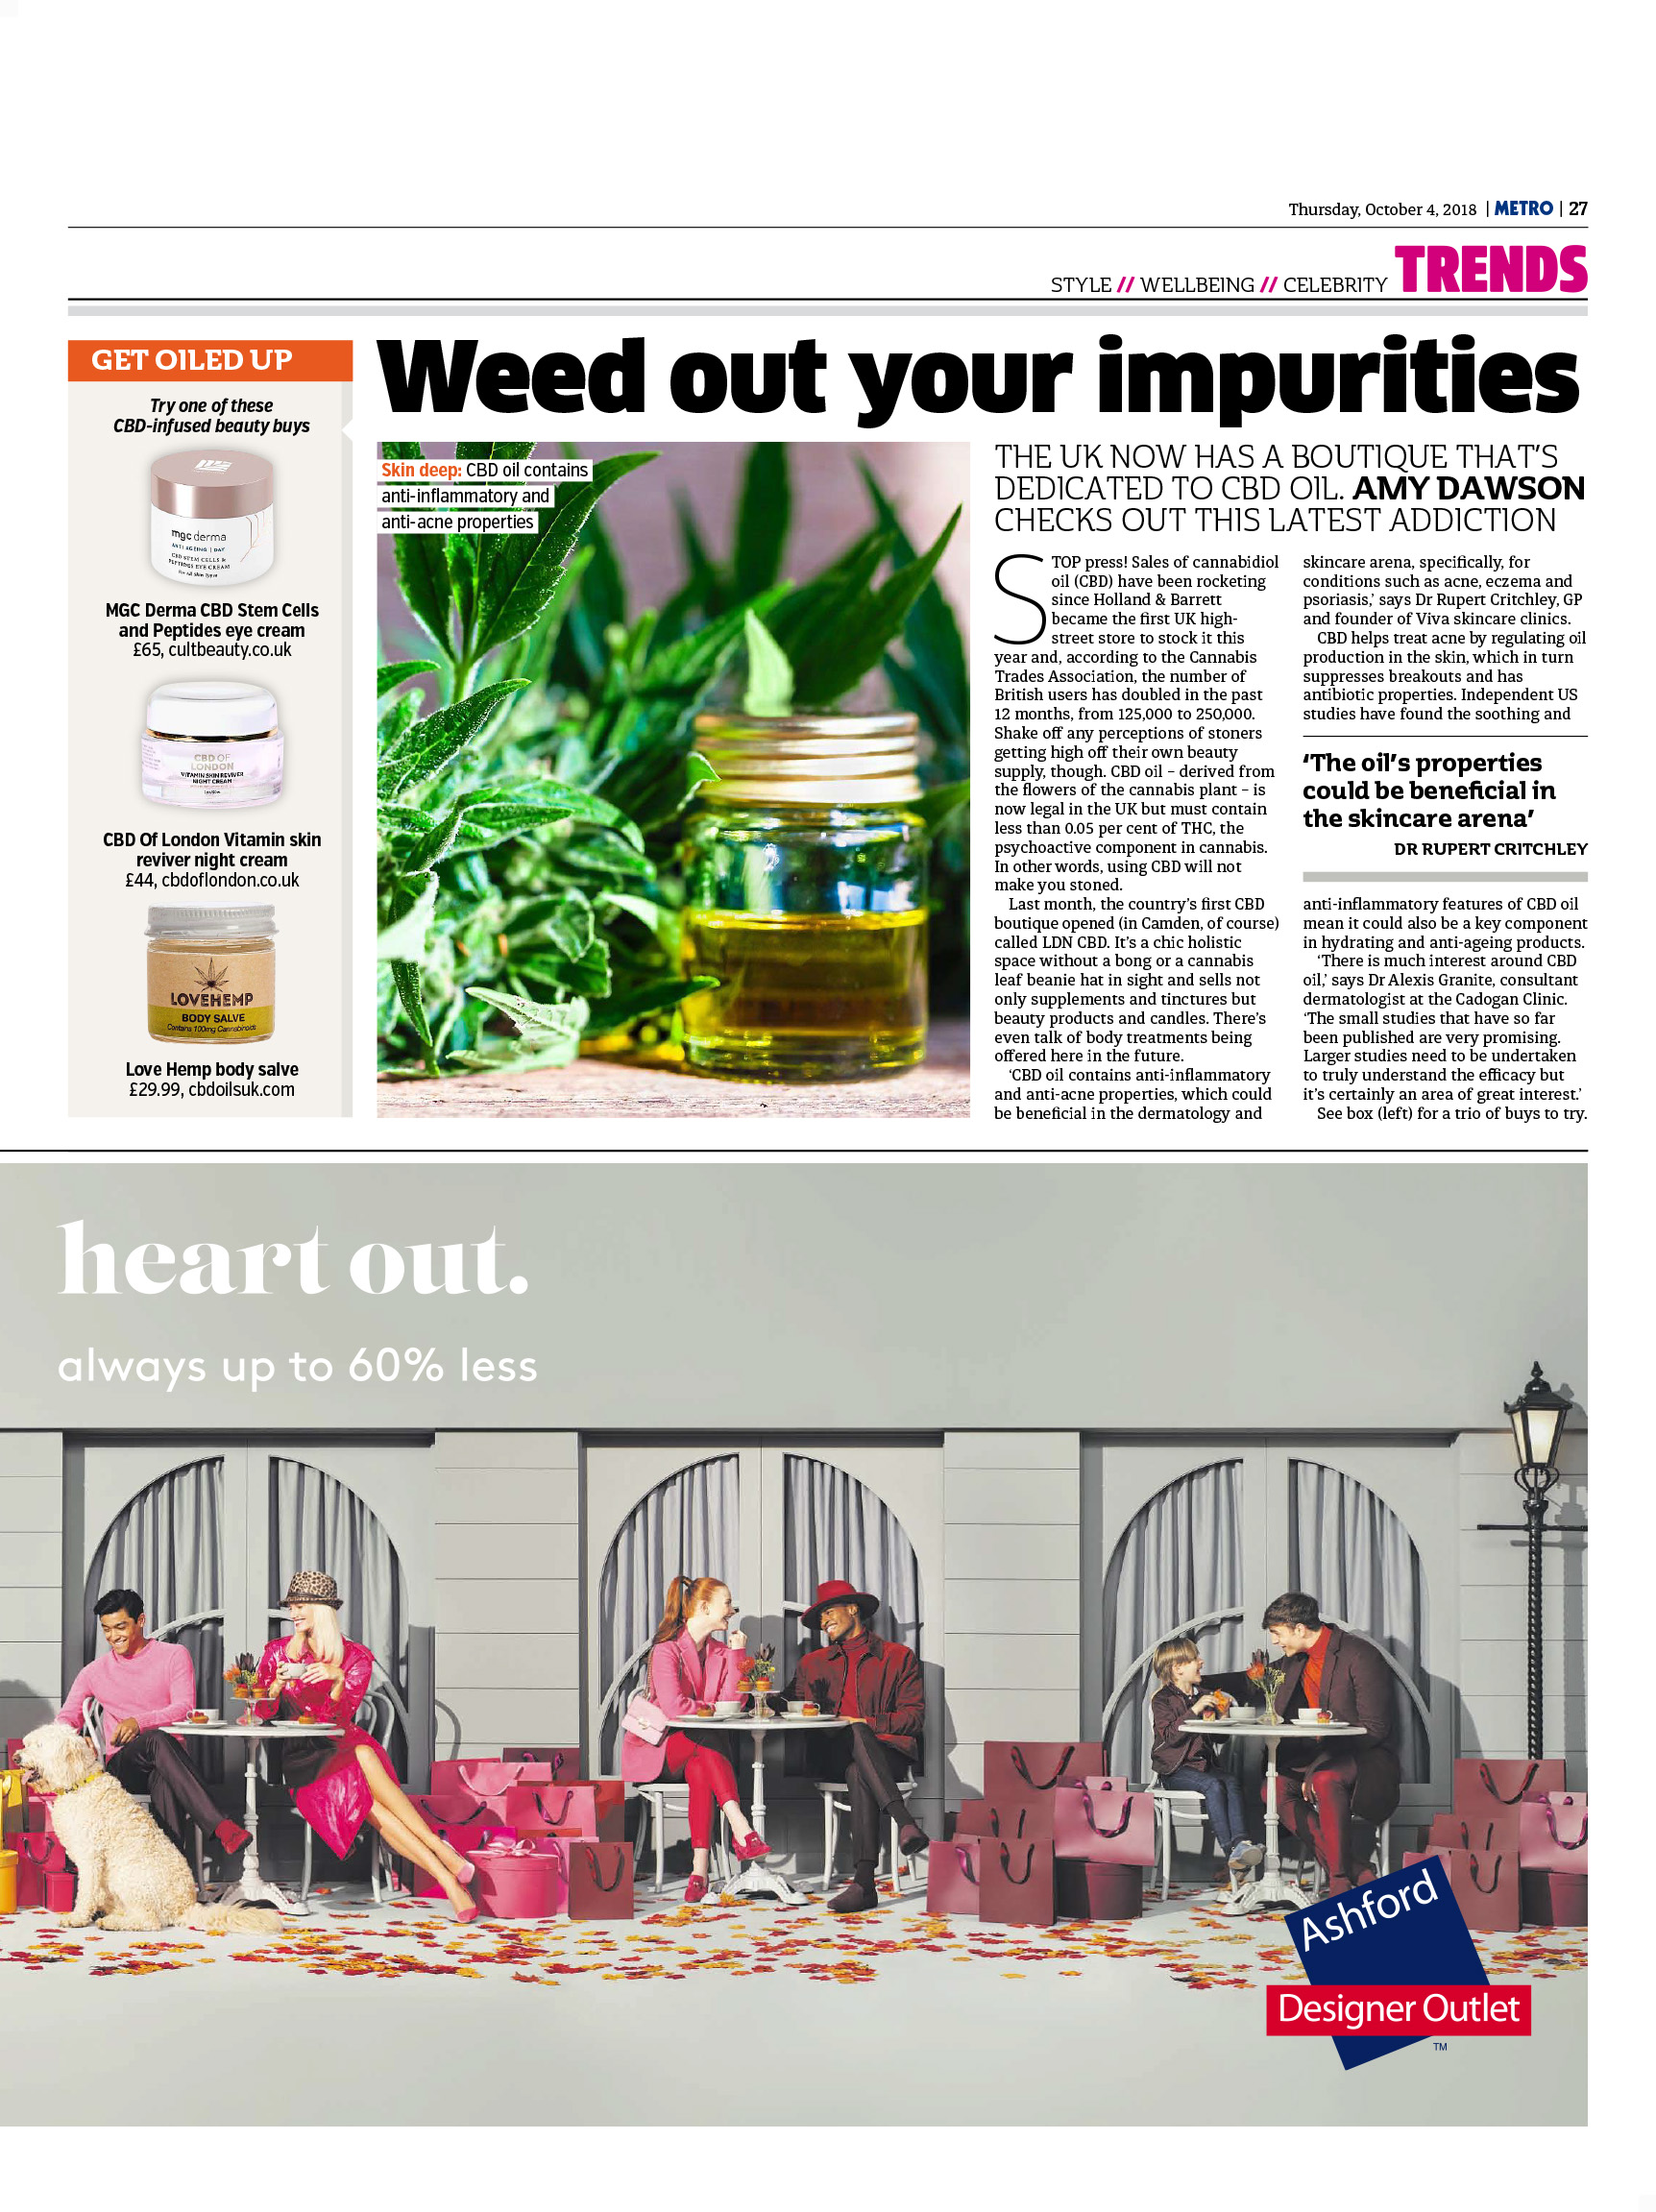 Weed out your impurities: The UK now has a boutique that's dedicated to CBD oil (Metro, 4th Oct 2018)